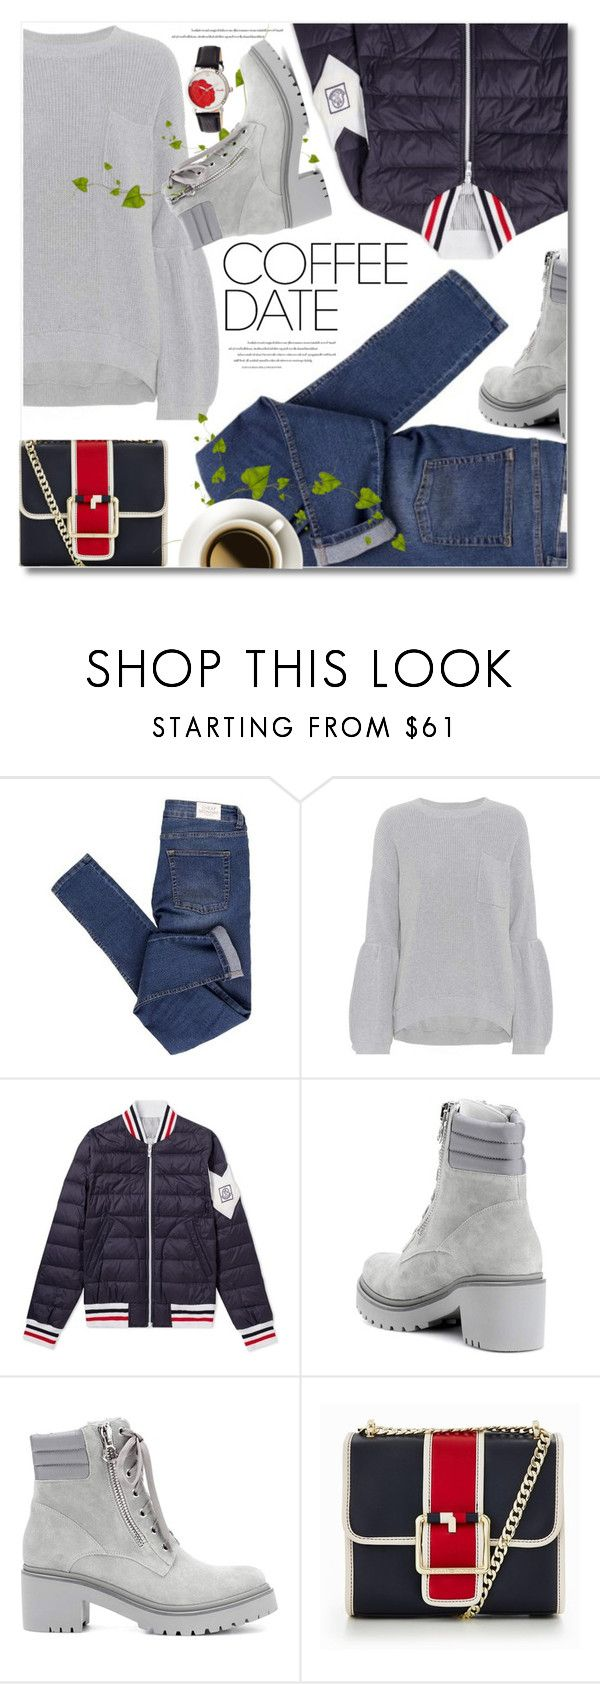 """""""Buzz-Worthy: Coffee Date"""" by svijetlana ❤ liked on Polyvore featuring Cheap Monday, Brunello Cucinelli, Moncler, Tommy Hilfiger, Bertha and CoffeeDate"""